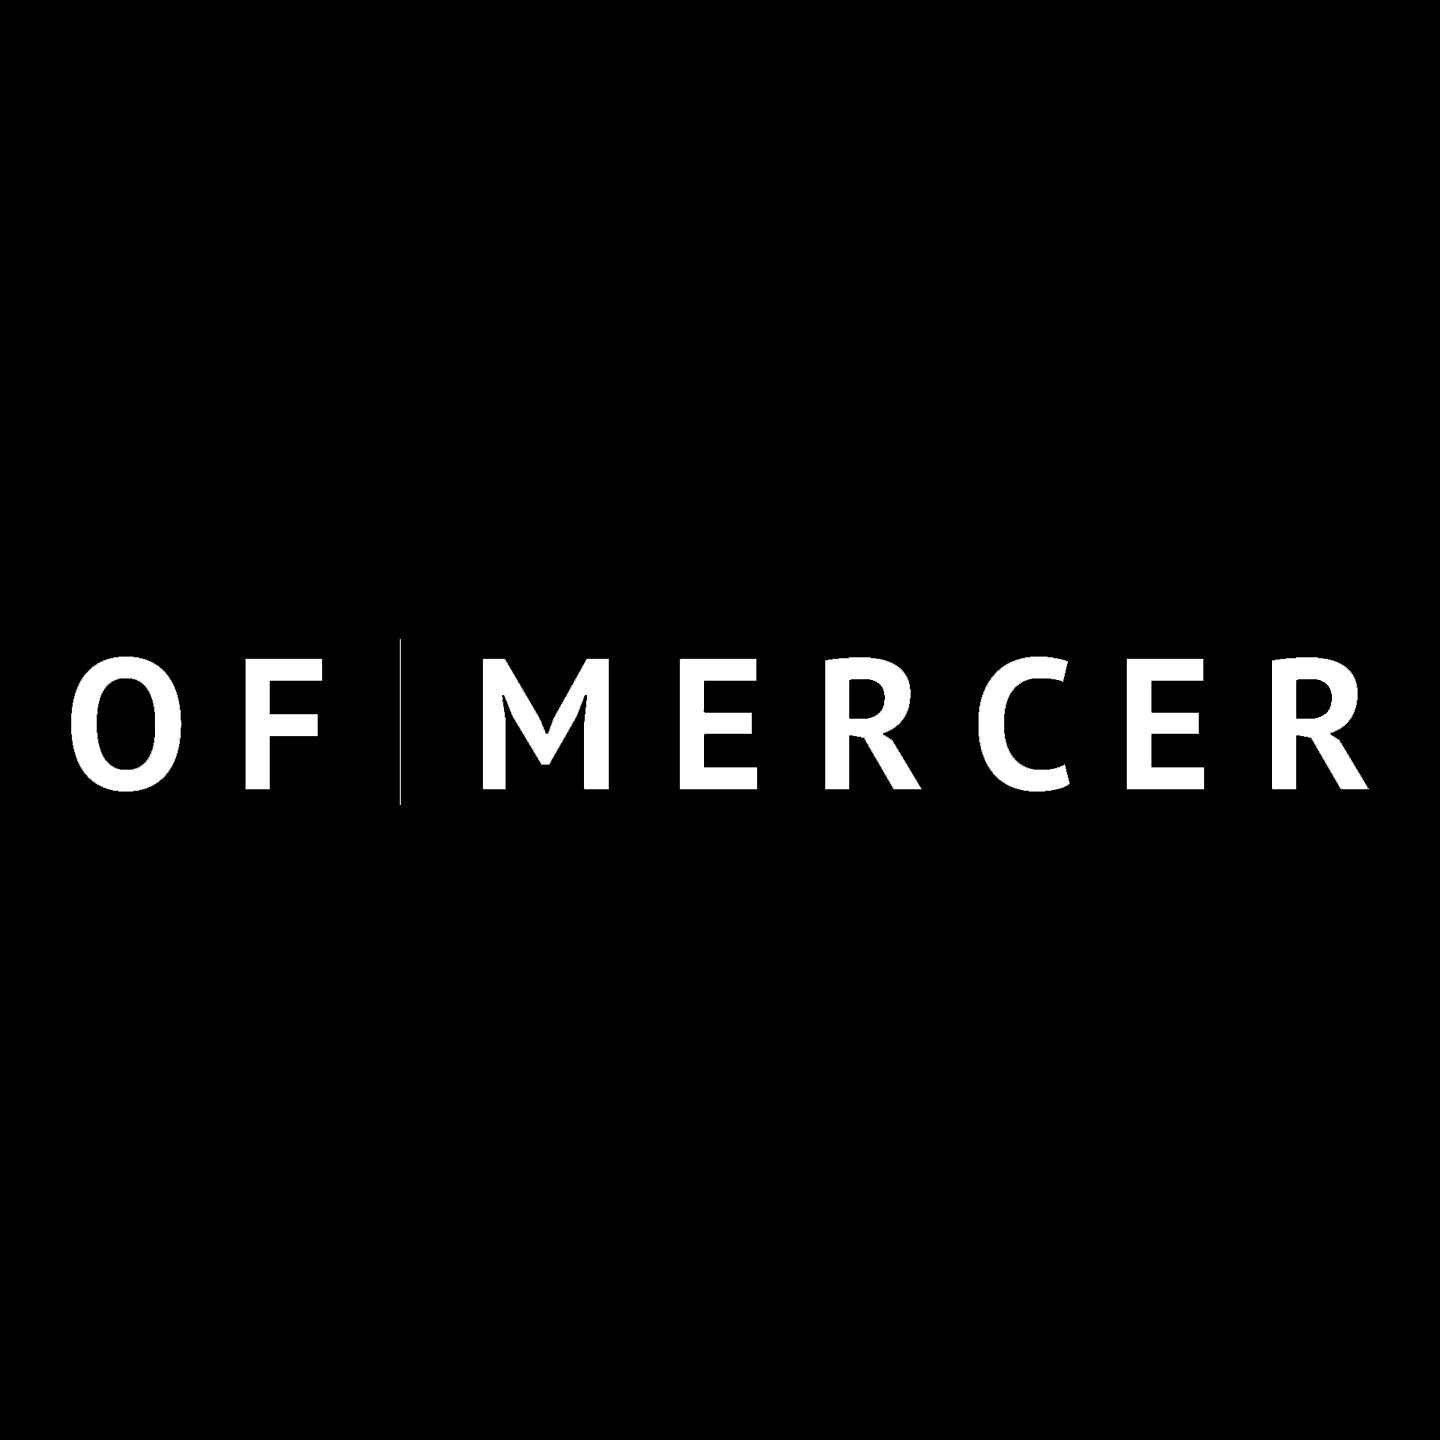 Of mercer